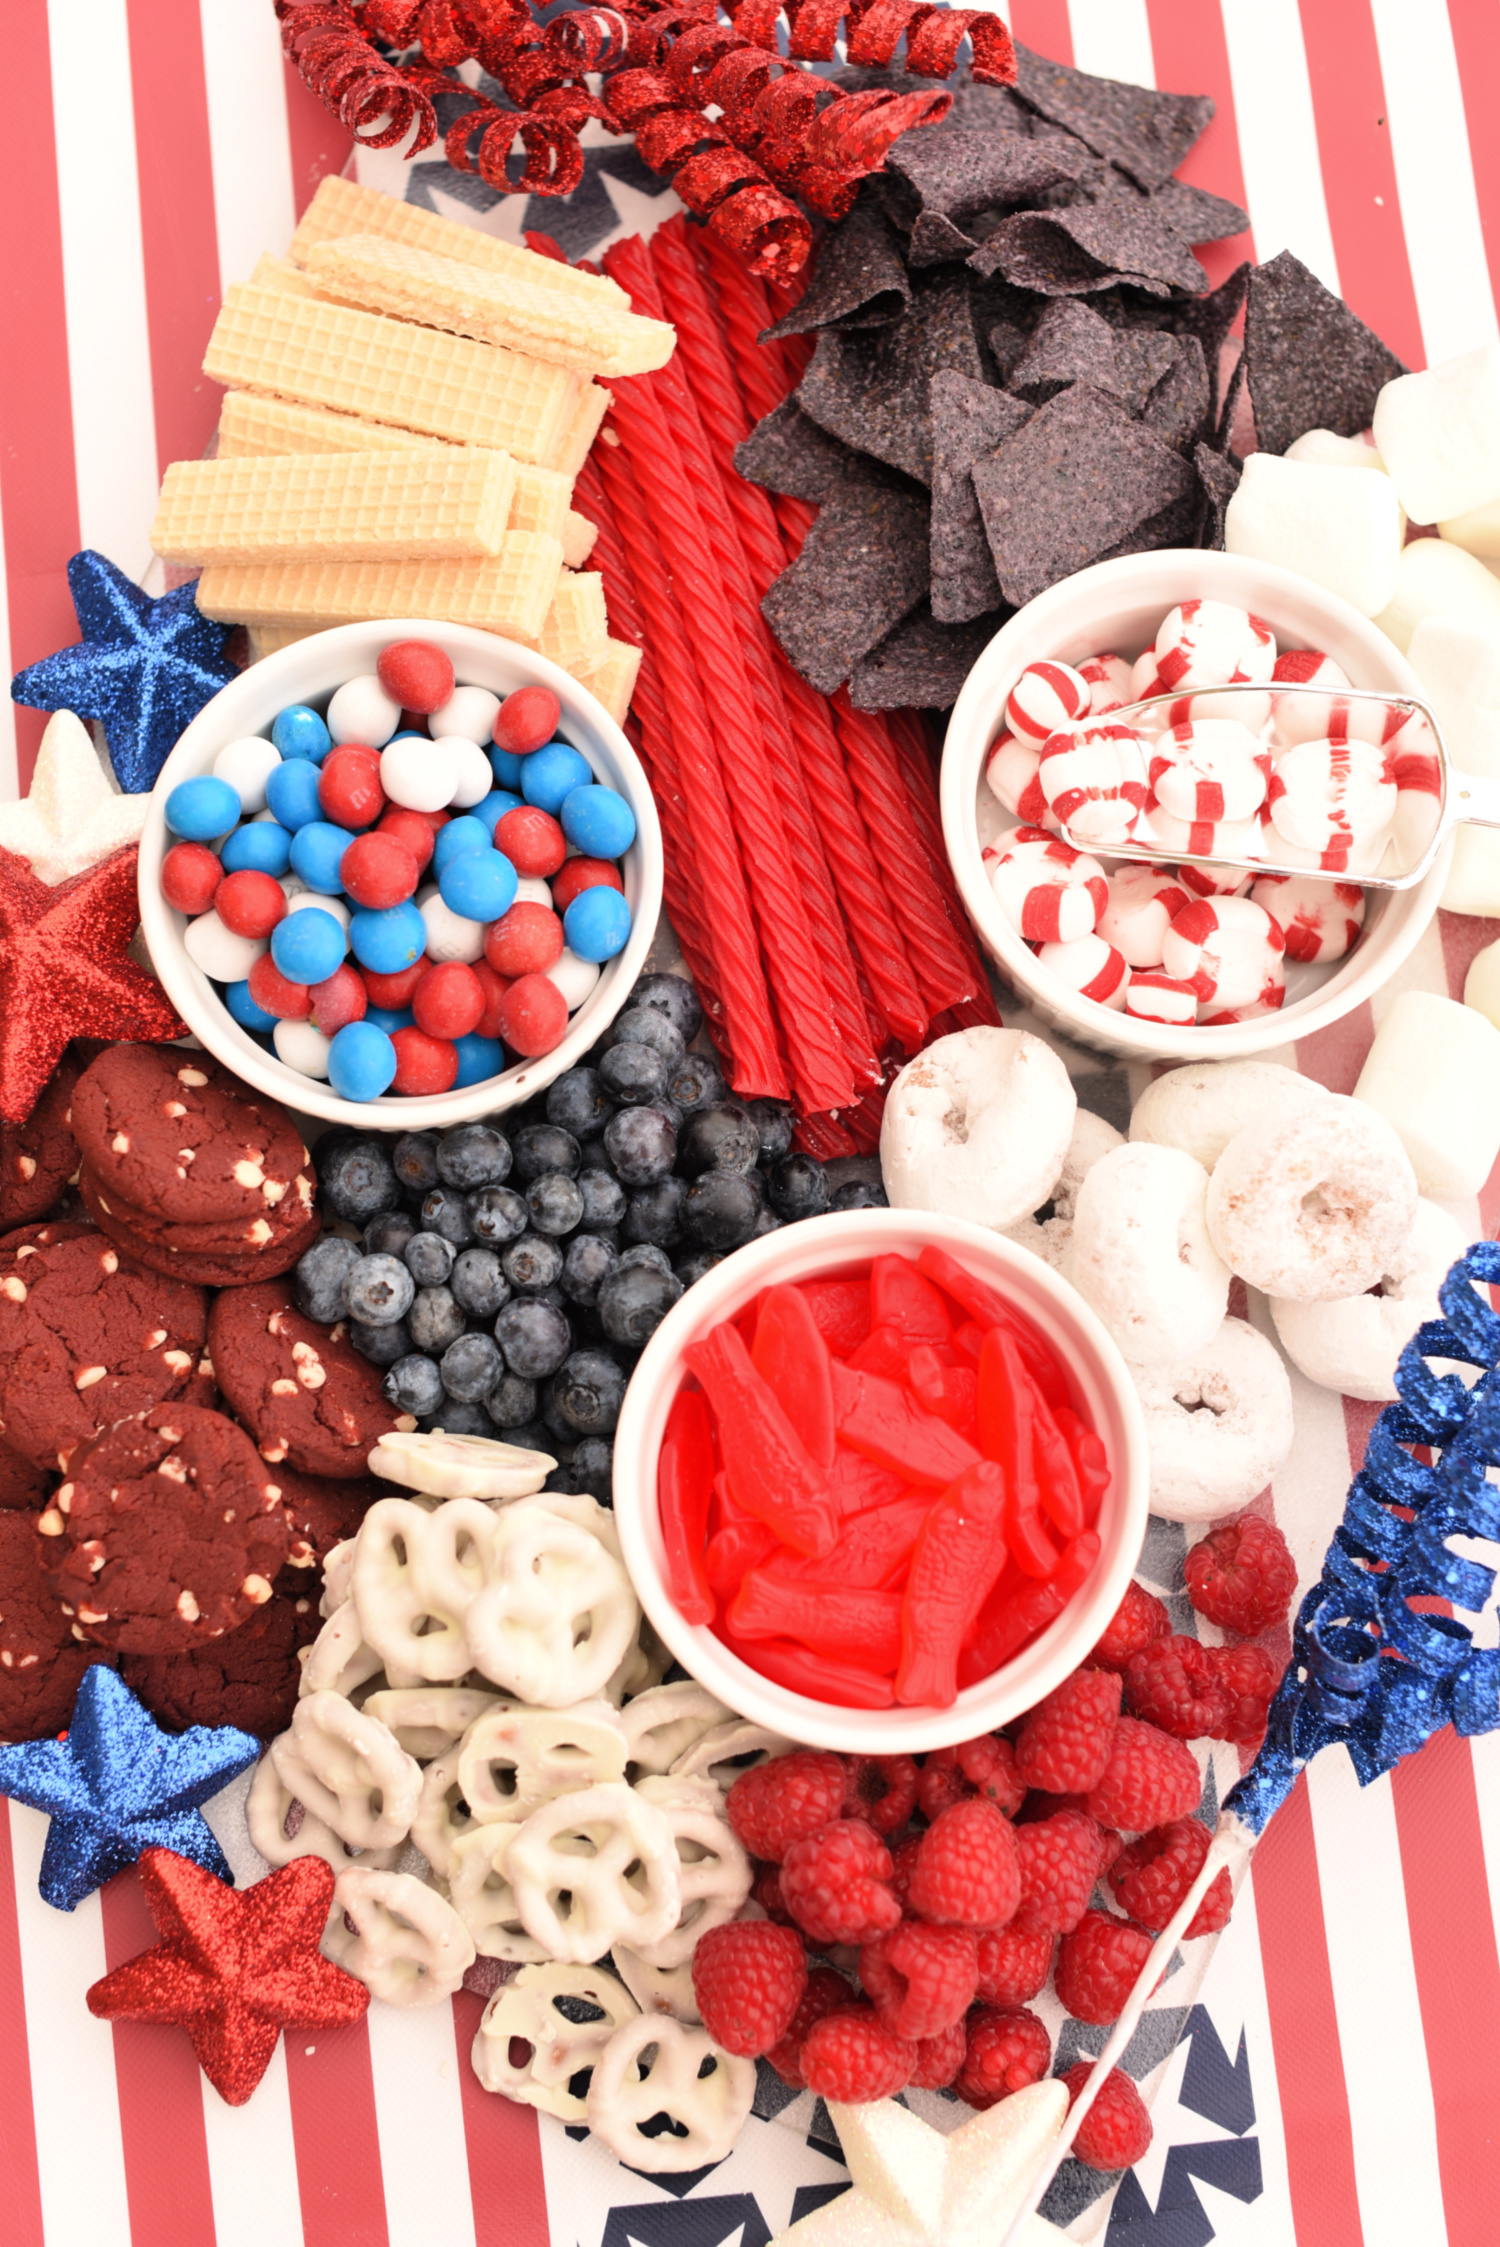 Red, White, & Blue Charcuterie Board for the 4th of July or other American holidays! Get patriotic for Independence Day, Memorial Day or any gathering to celebrate America. #4thofJuly #4thofJulyfood #america #independenceday